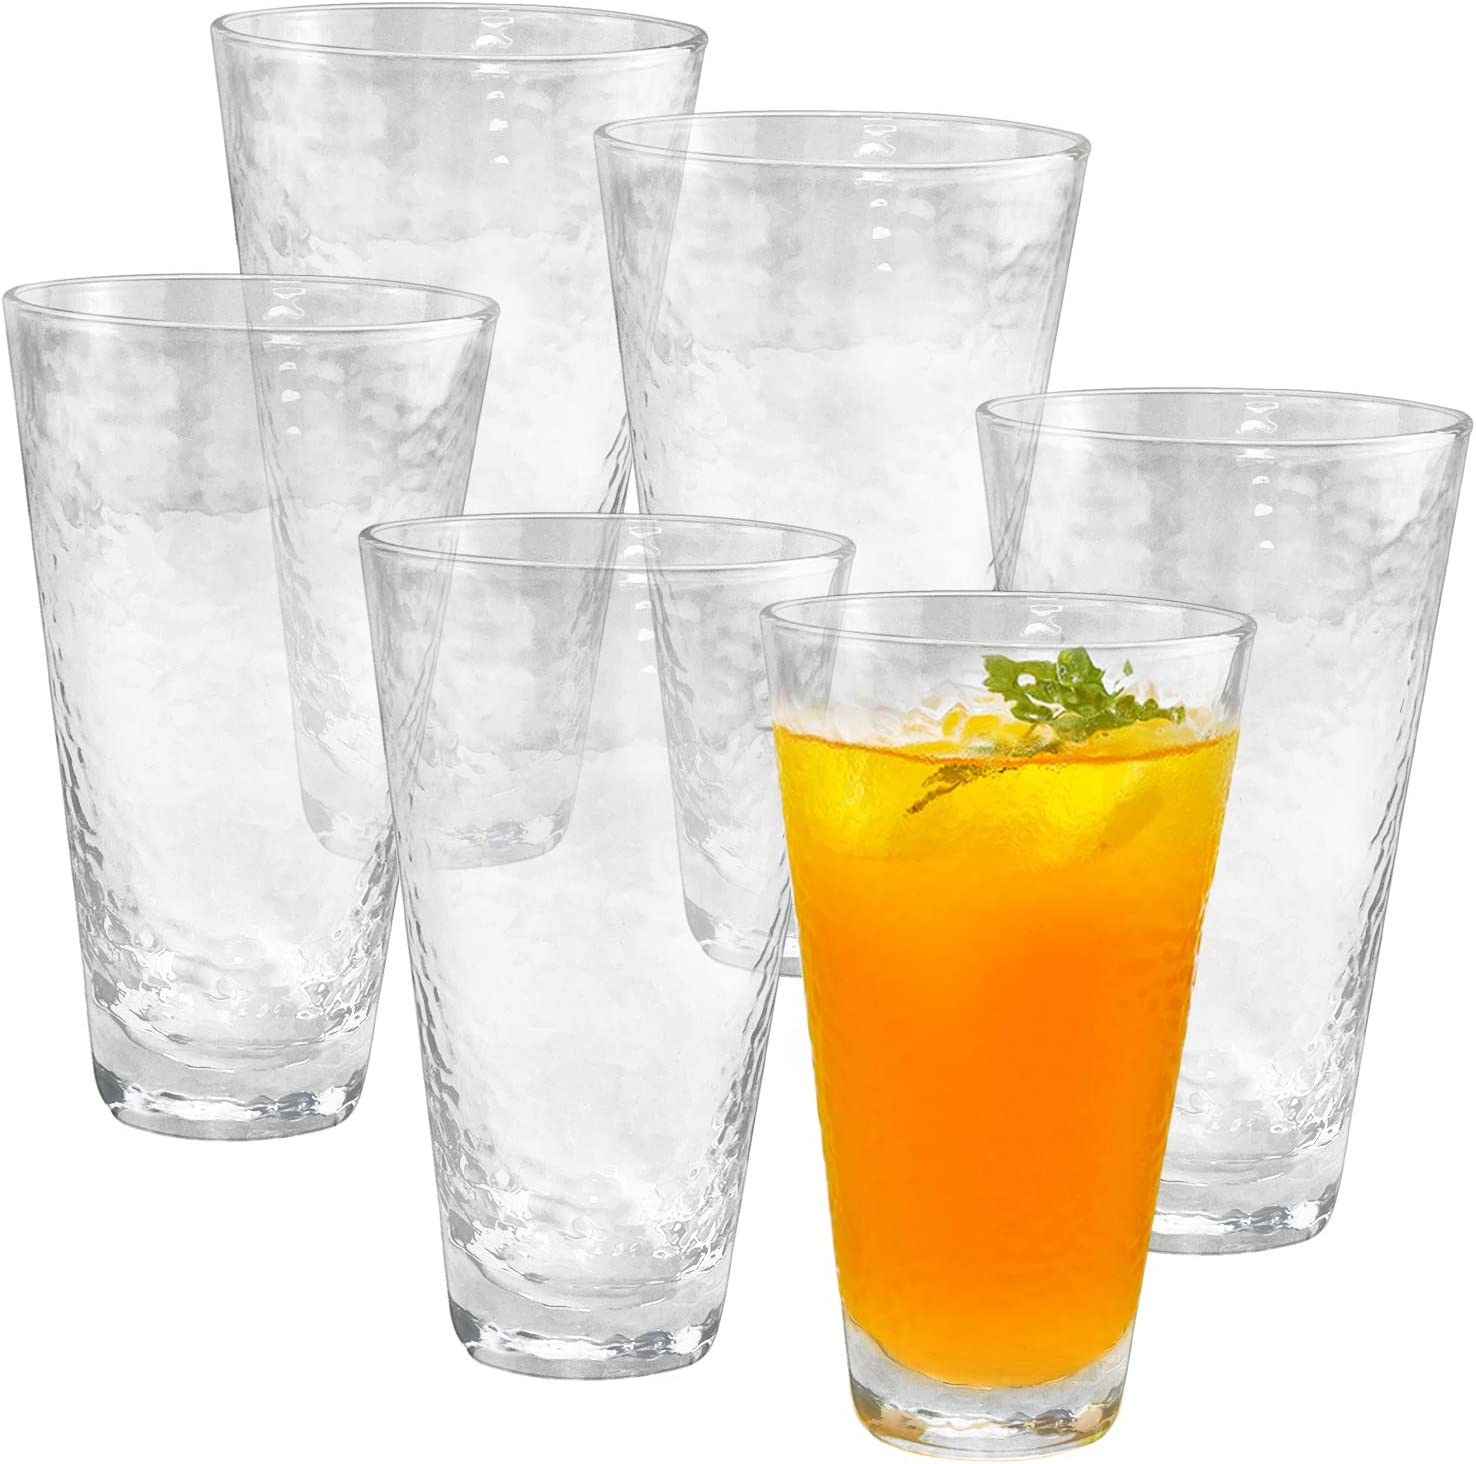 HORLIMER 14 oz Highball Drinking Glasses Set of 6, Clear Glass Tumbler with Textured Design and Heavy Base for Water Wine Juice Latte